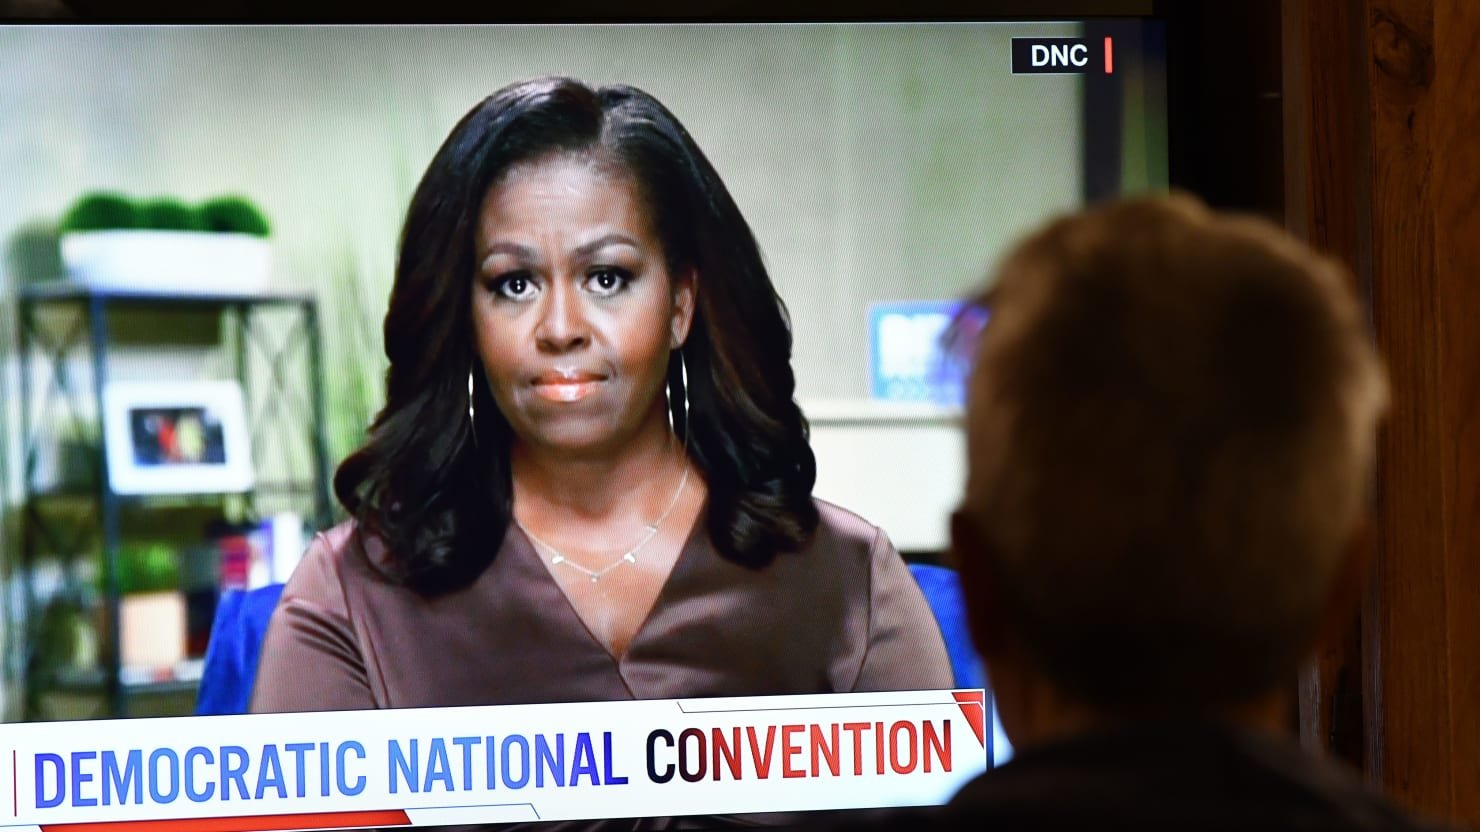 Michelle's New Stance: When They Go Low, We Square Up